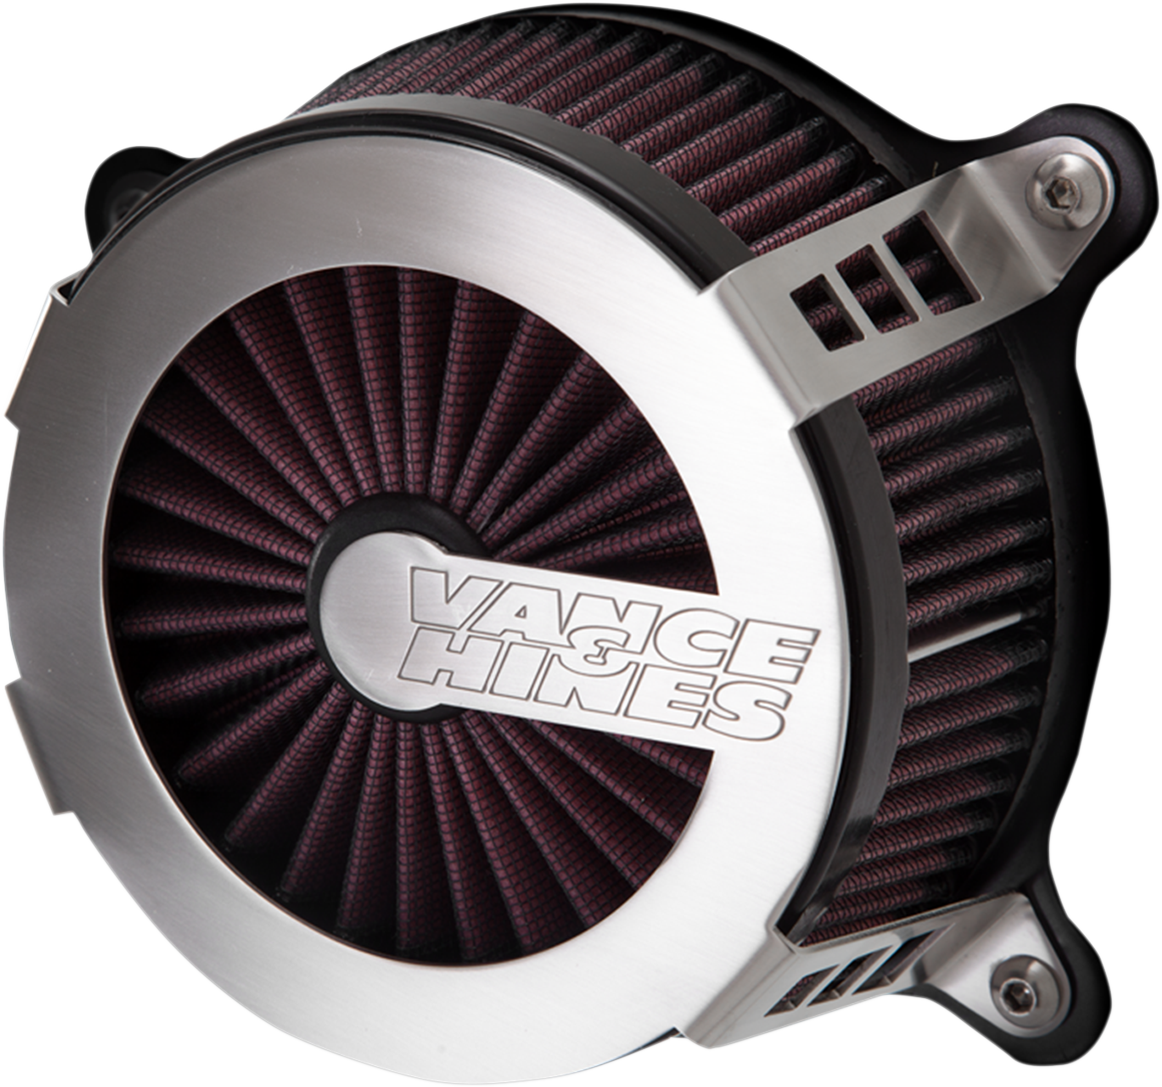 Vance & Hines V02 Cage Fighter Air Filter Kit for 04-19 Harley Sportster XLL XLN